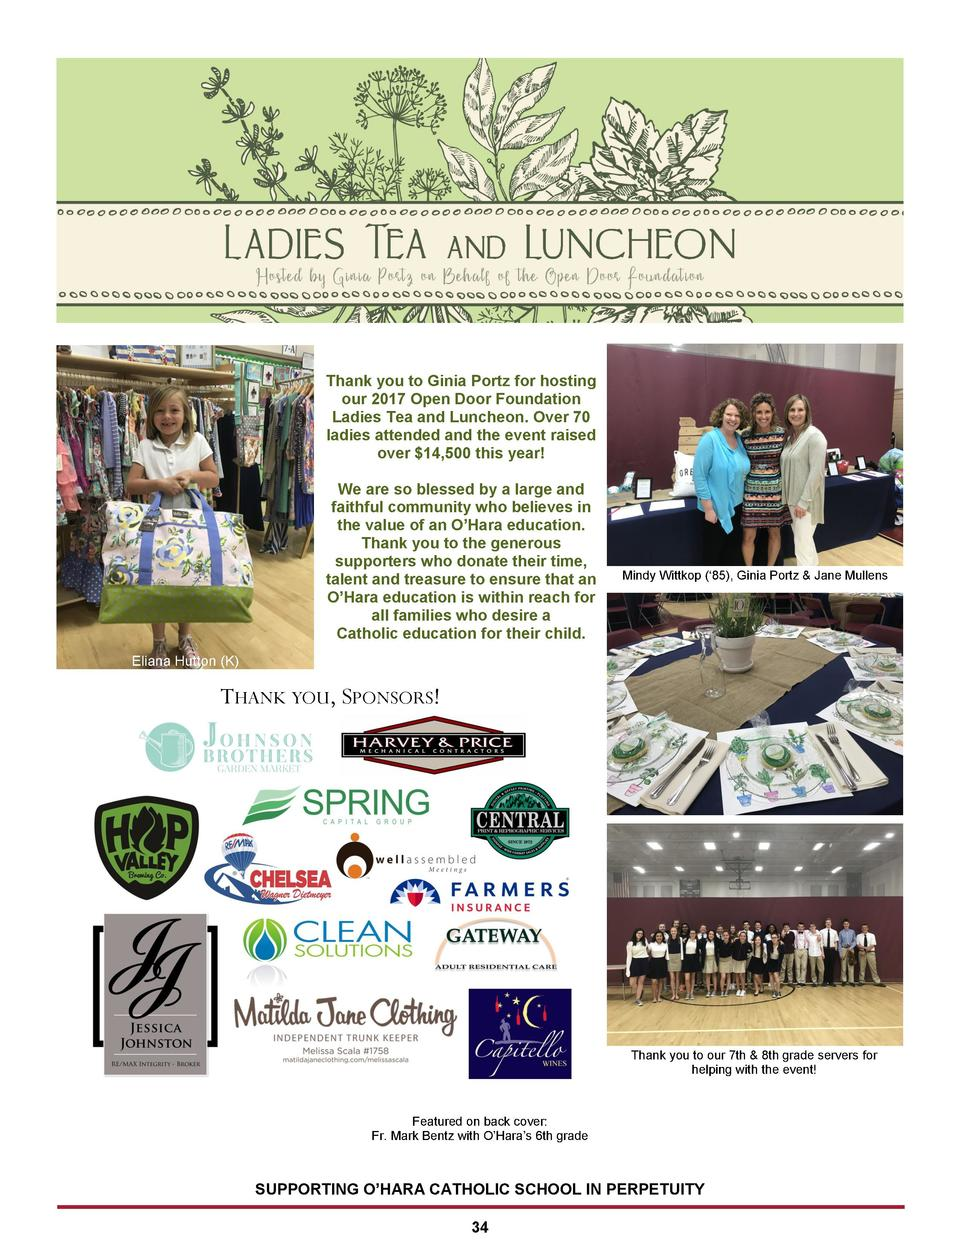 Thank you to Ginia Portz for hosting our 2017 Open Door Foundation Ladies Tea and Luncheon. Over 70 ladies attended and th...